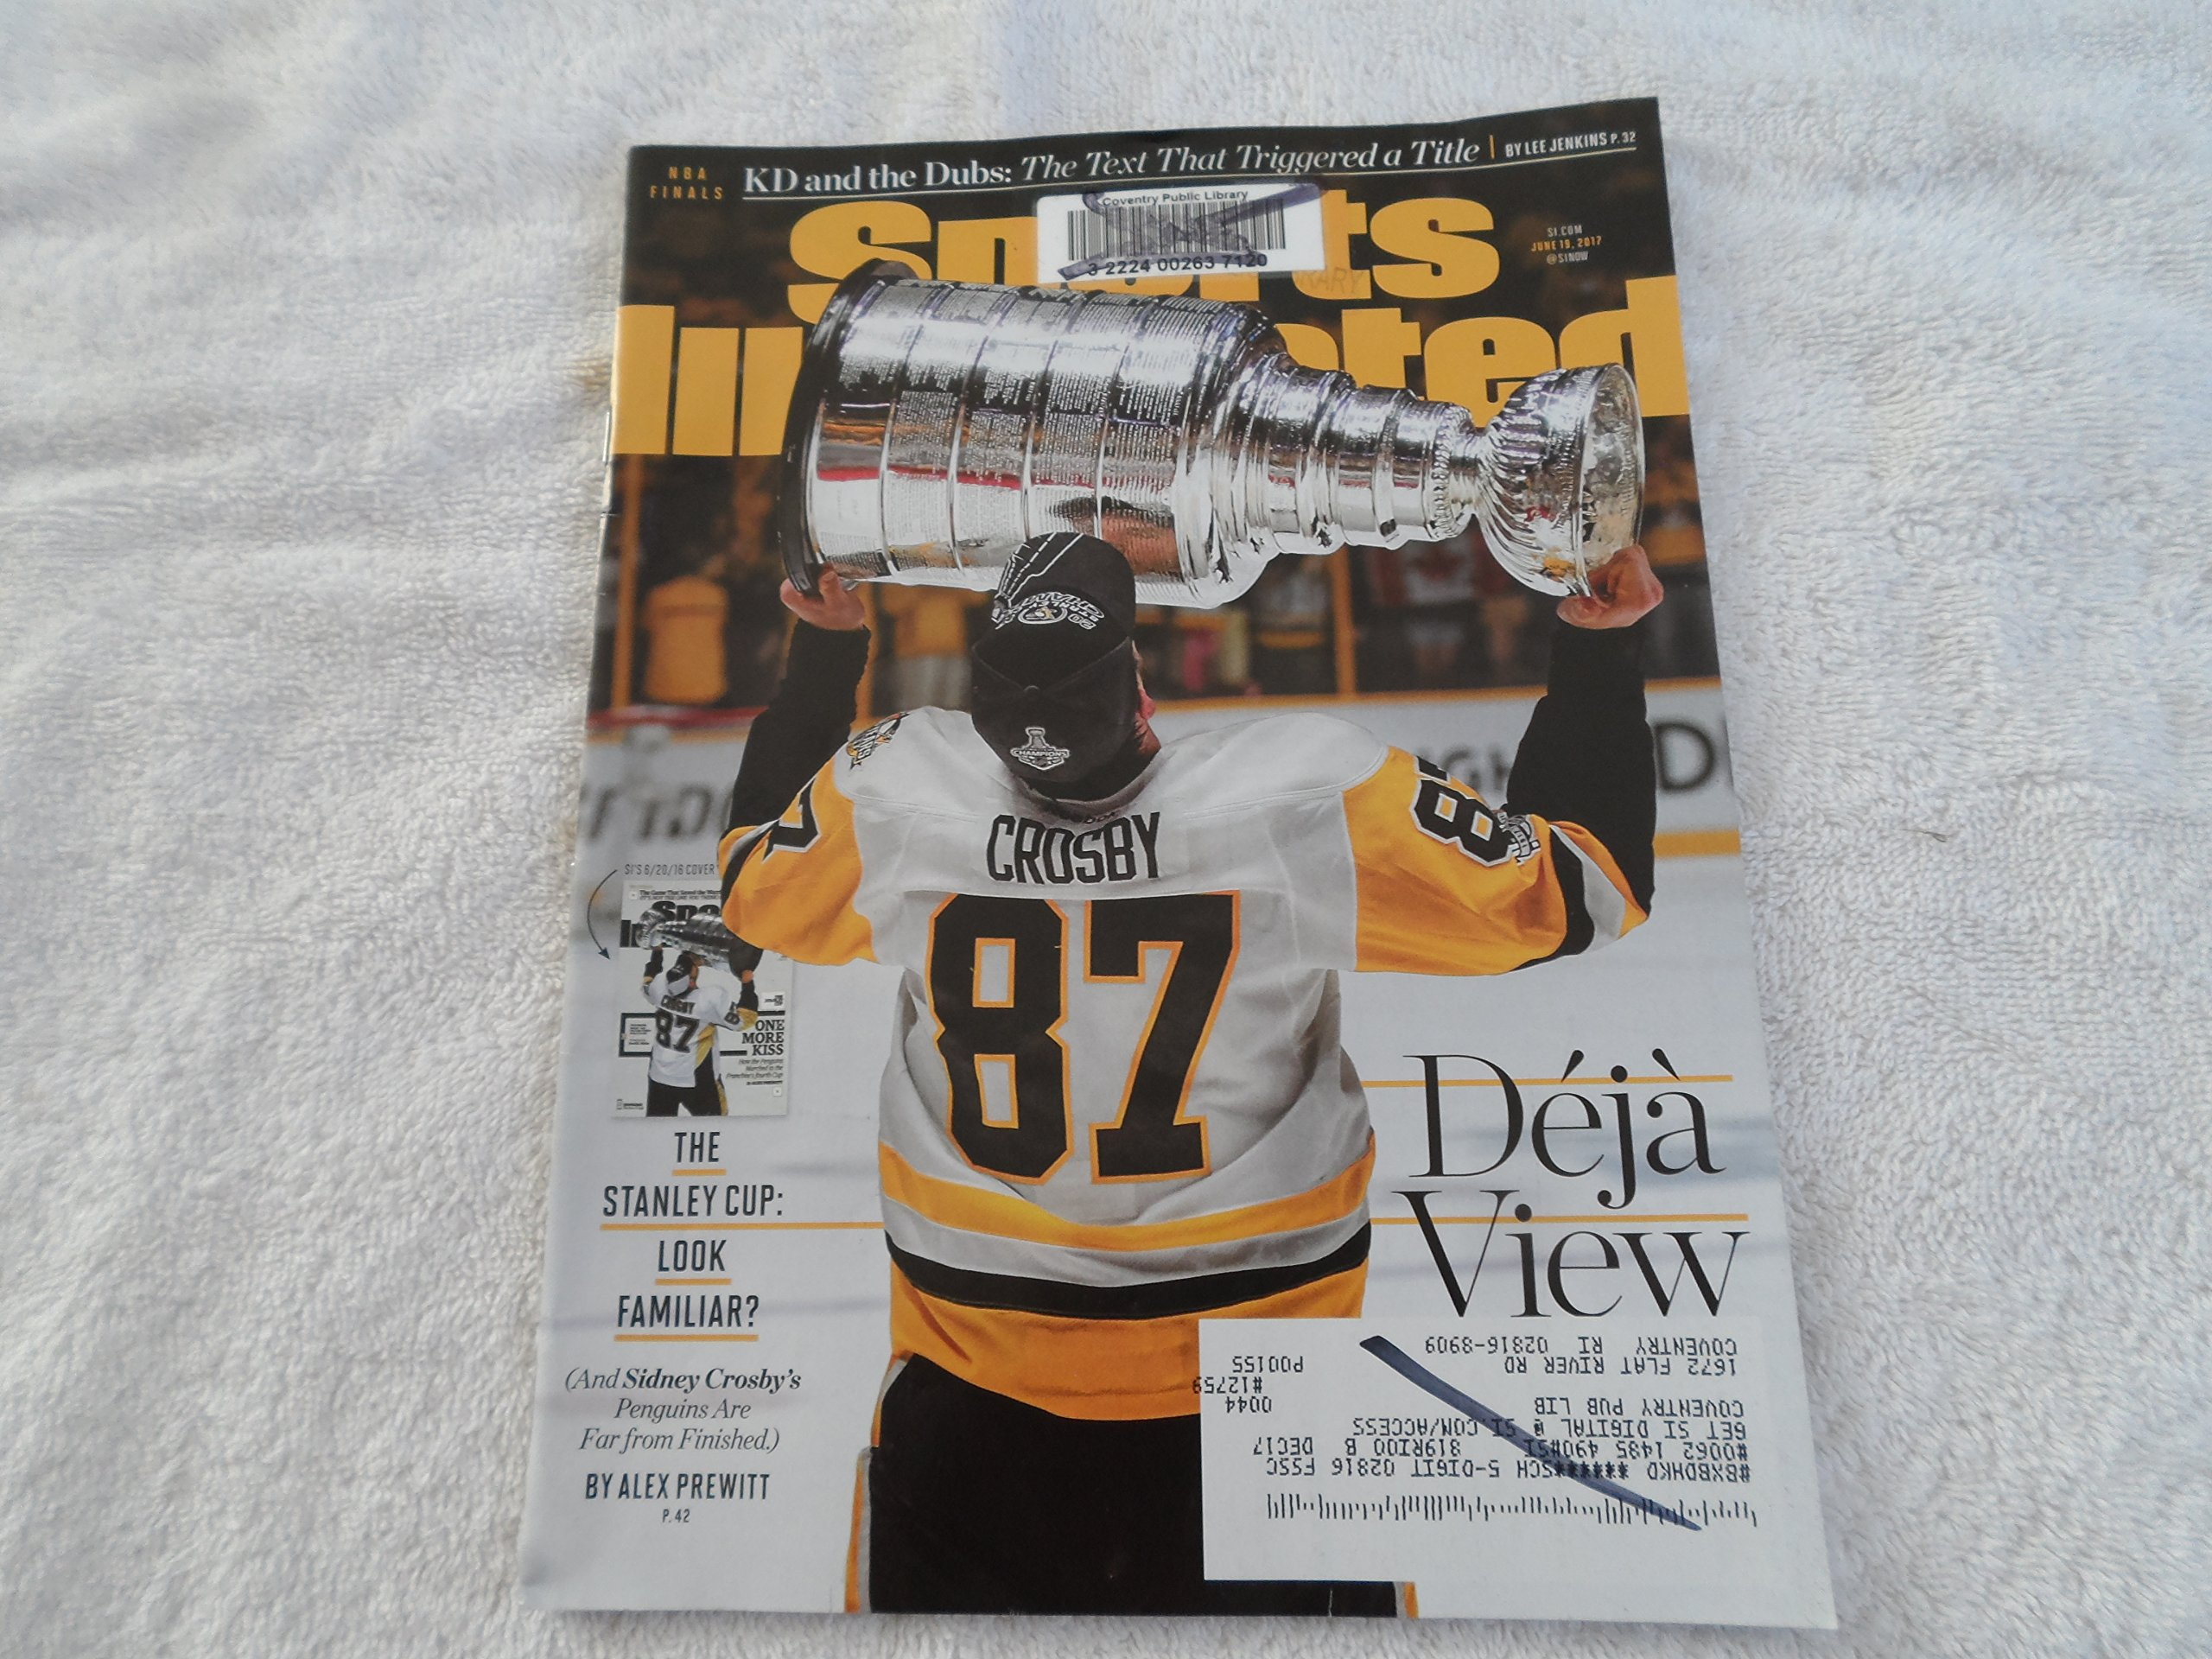 Sports Illustrated, June 19, 2017 (Deja View: The Stanley Cup), Volume 126, Number 17 ebook